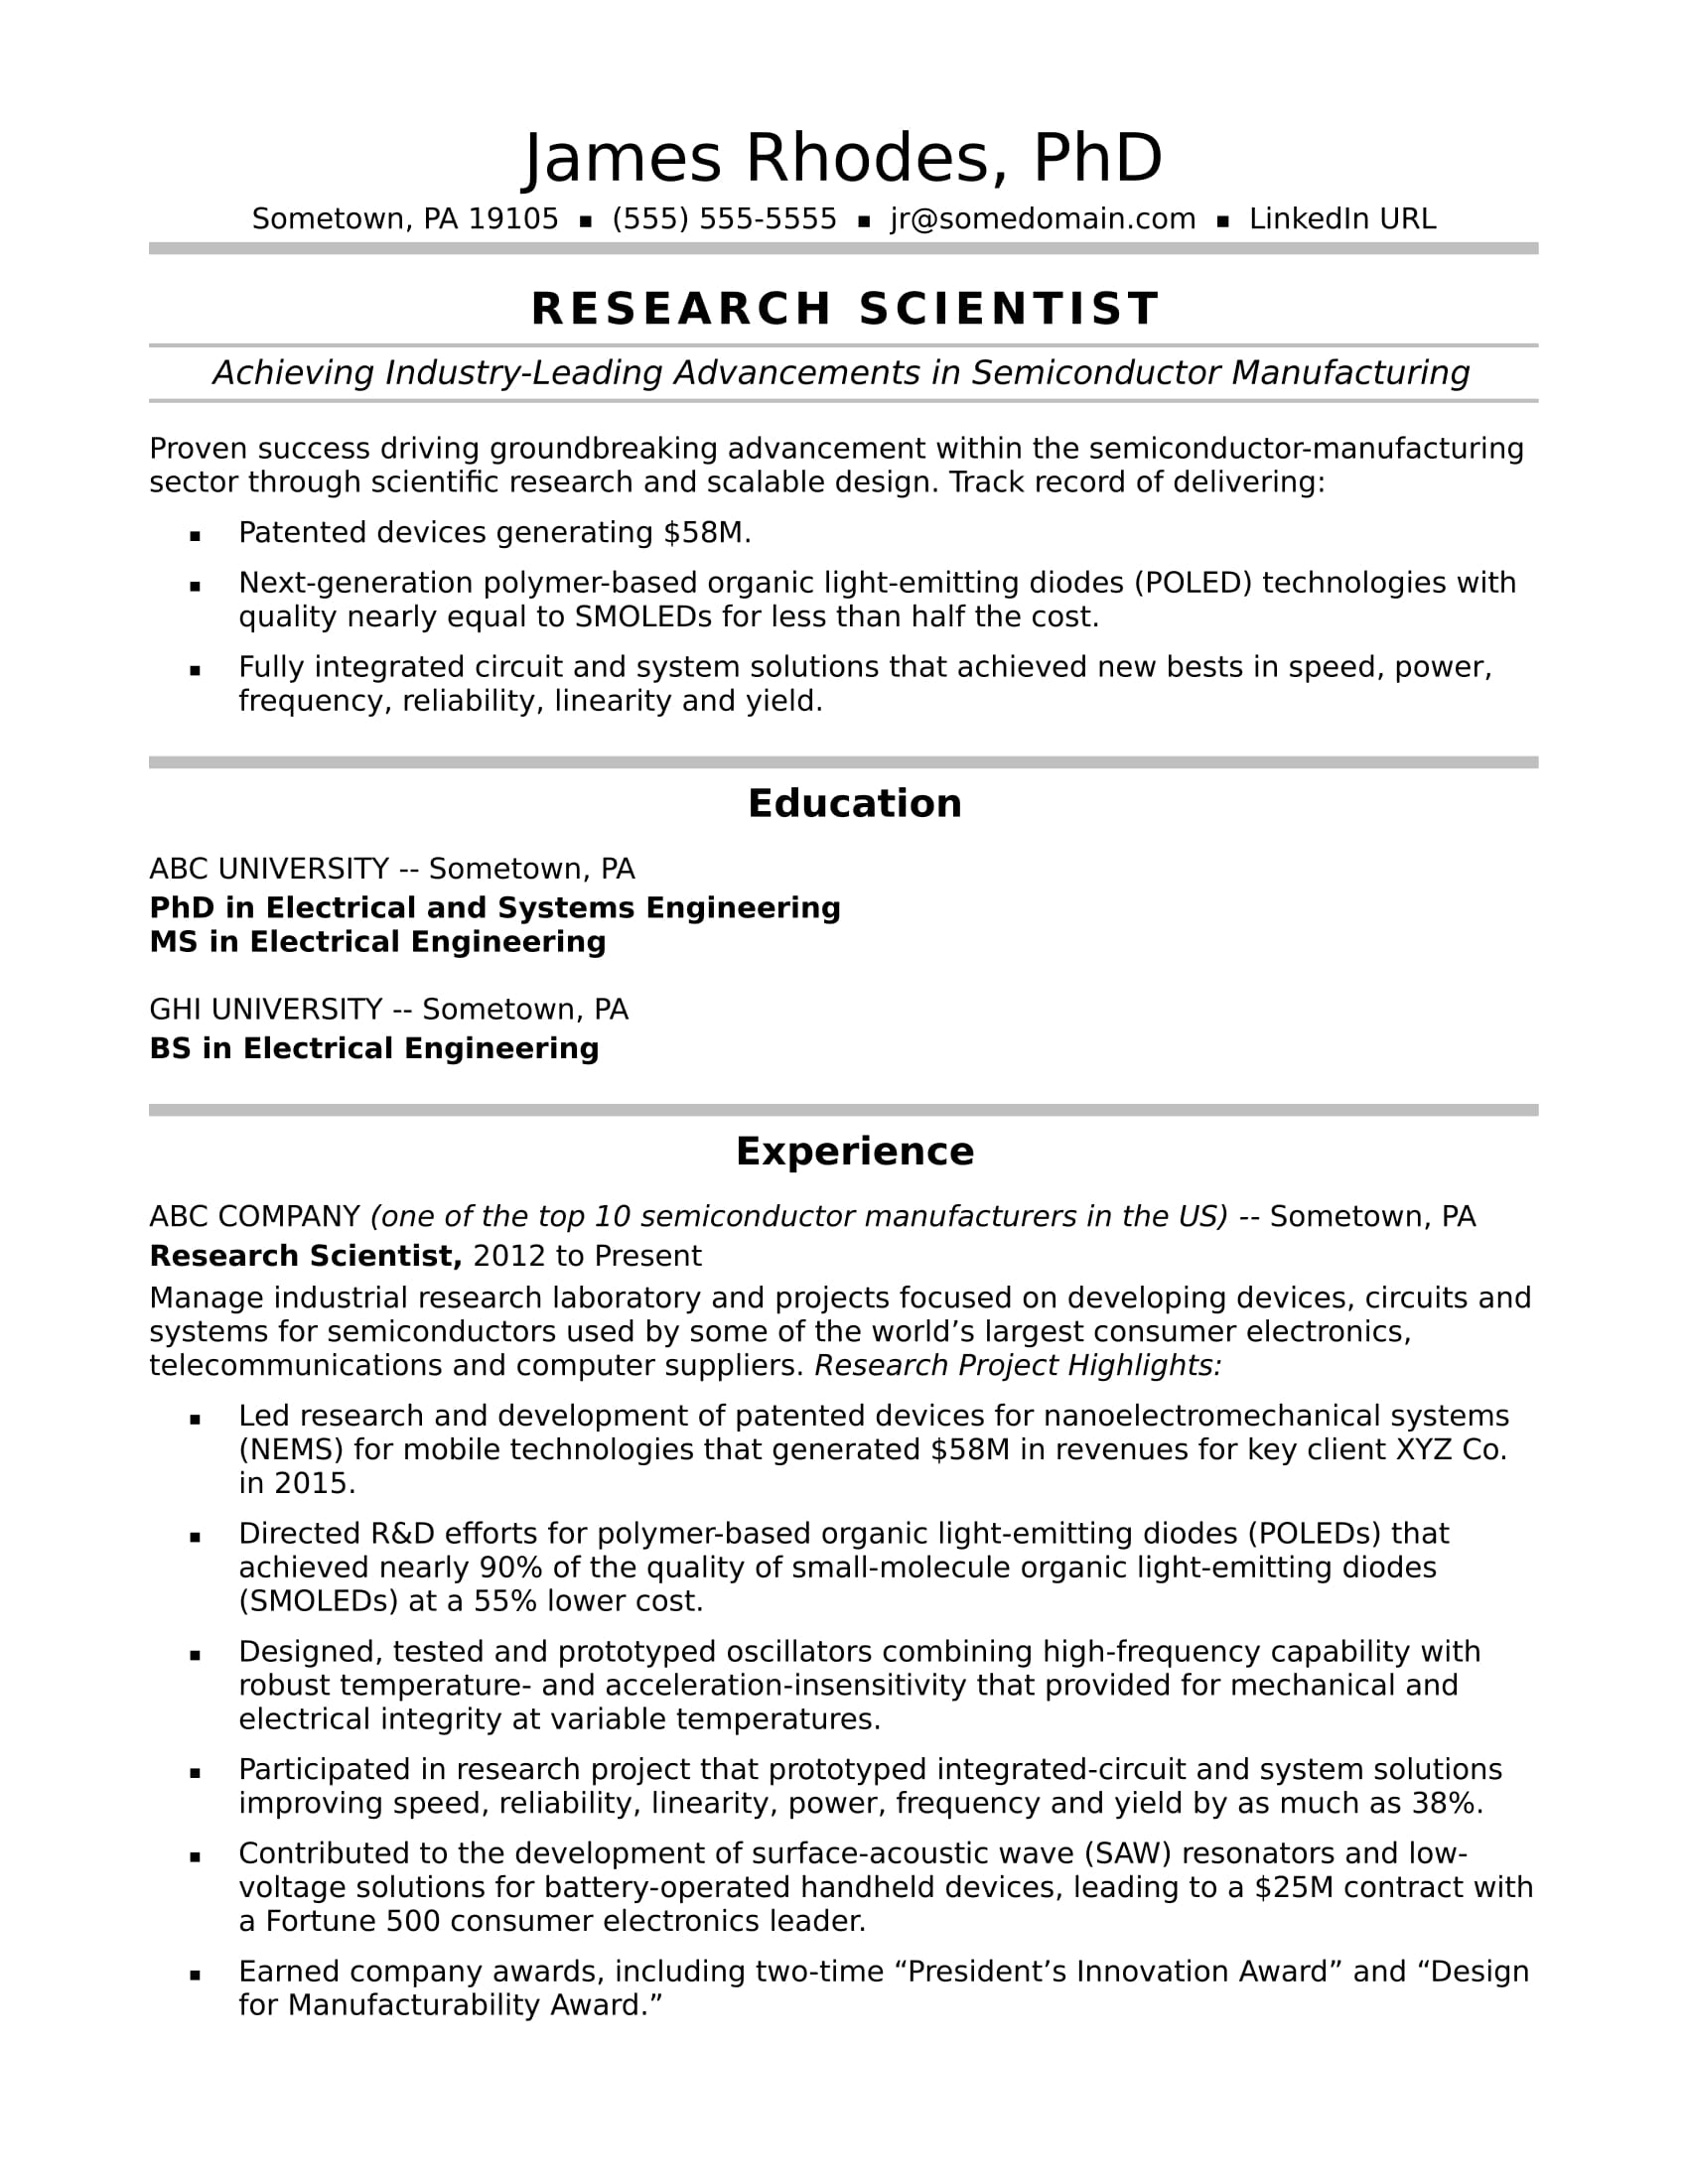 research scientist resume sample monster experience midlevel embedded fresher federal Resume Research Experience Resume